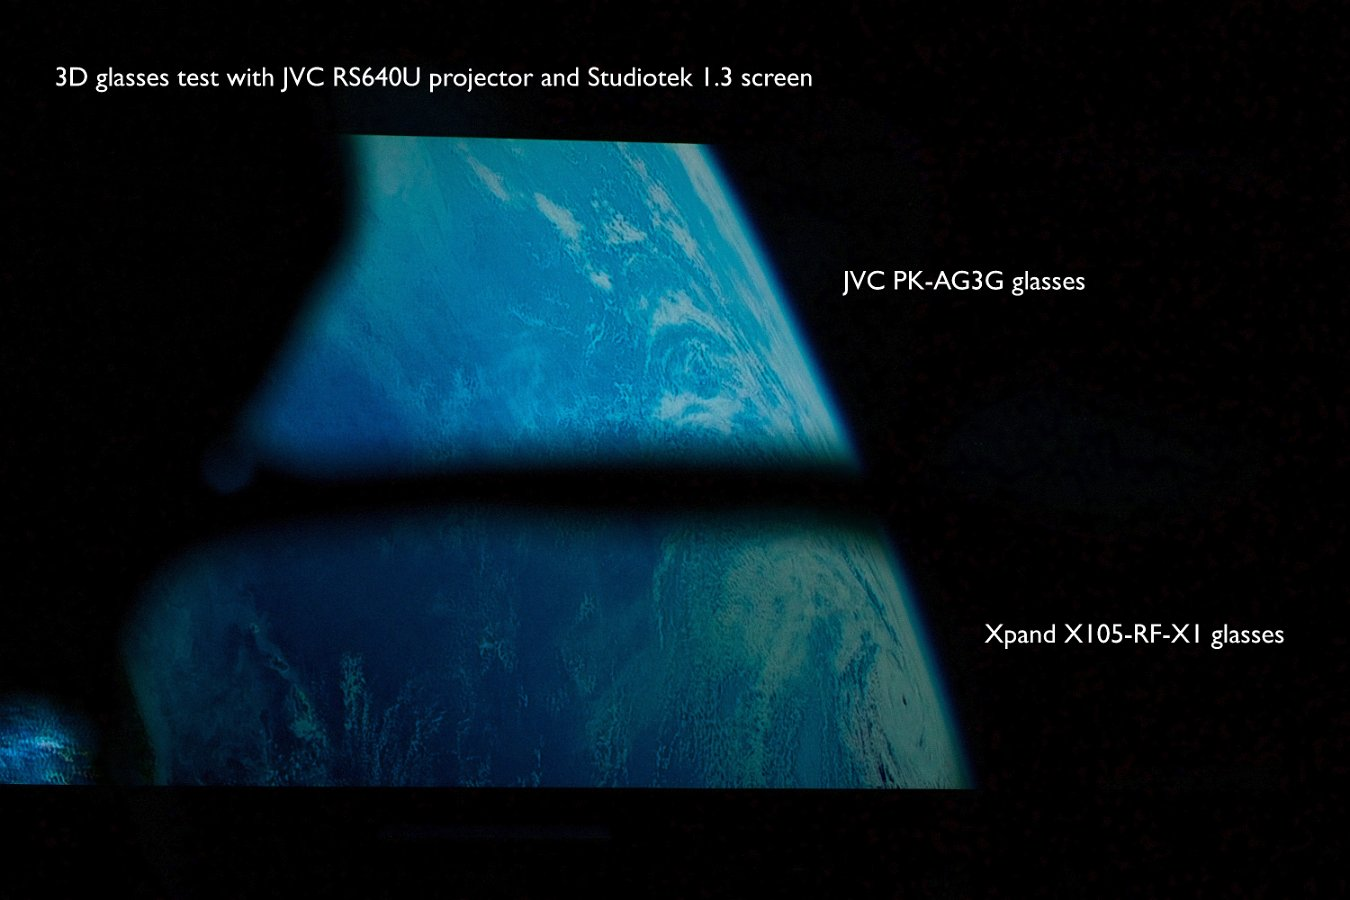 Home Theater Upgrade: 4K/HDR with the JVC RS640 Projector